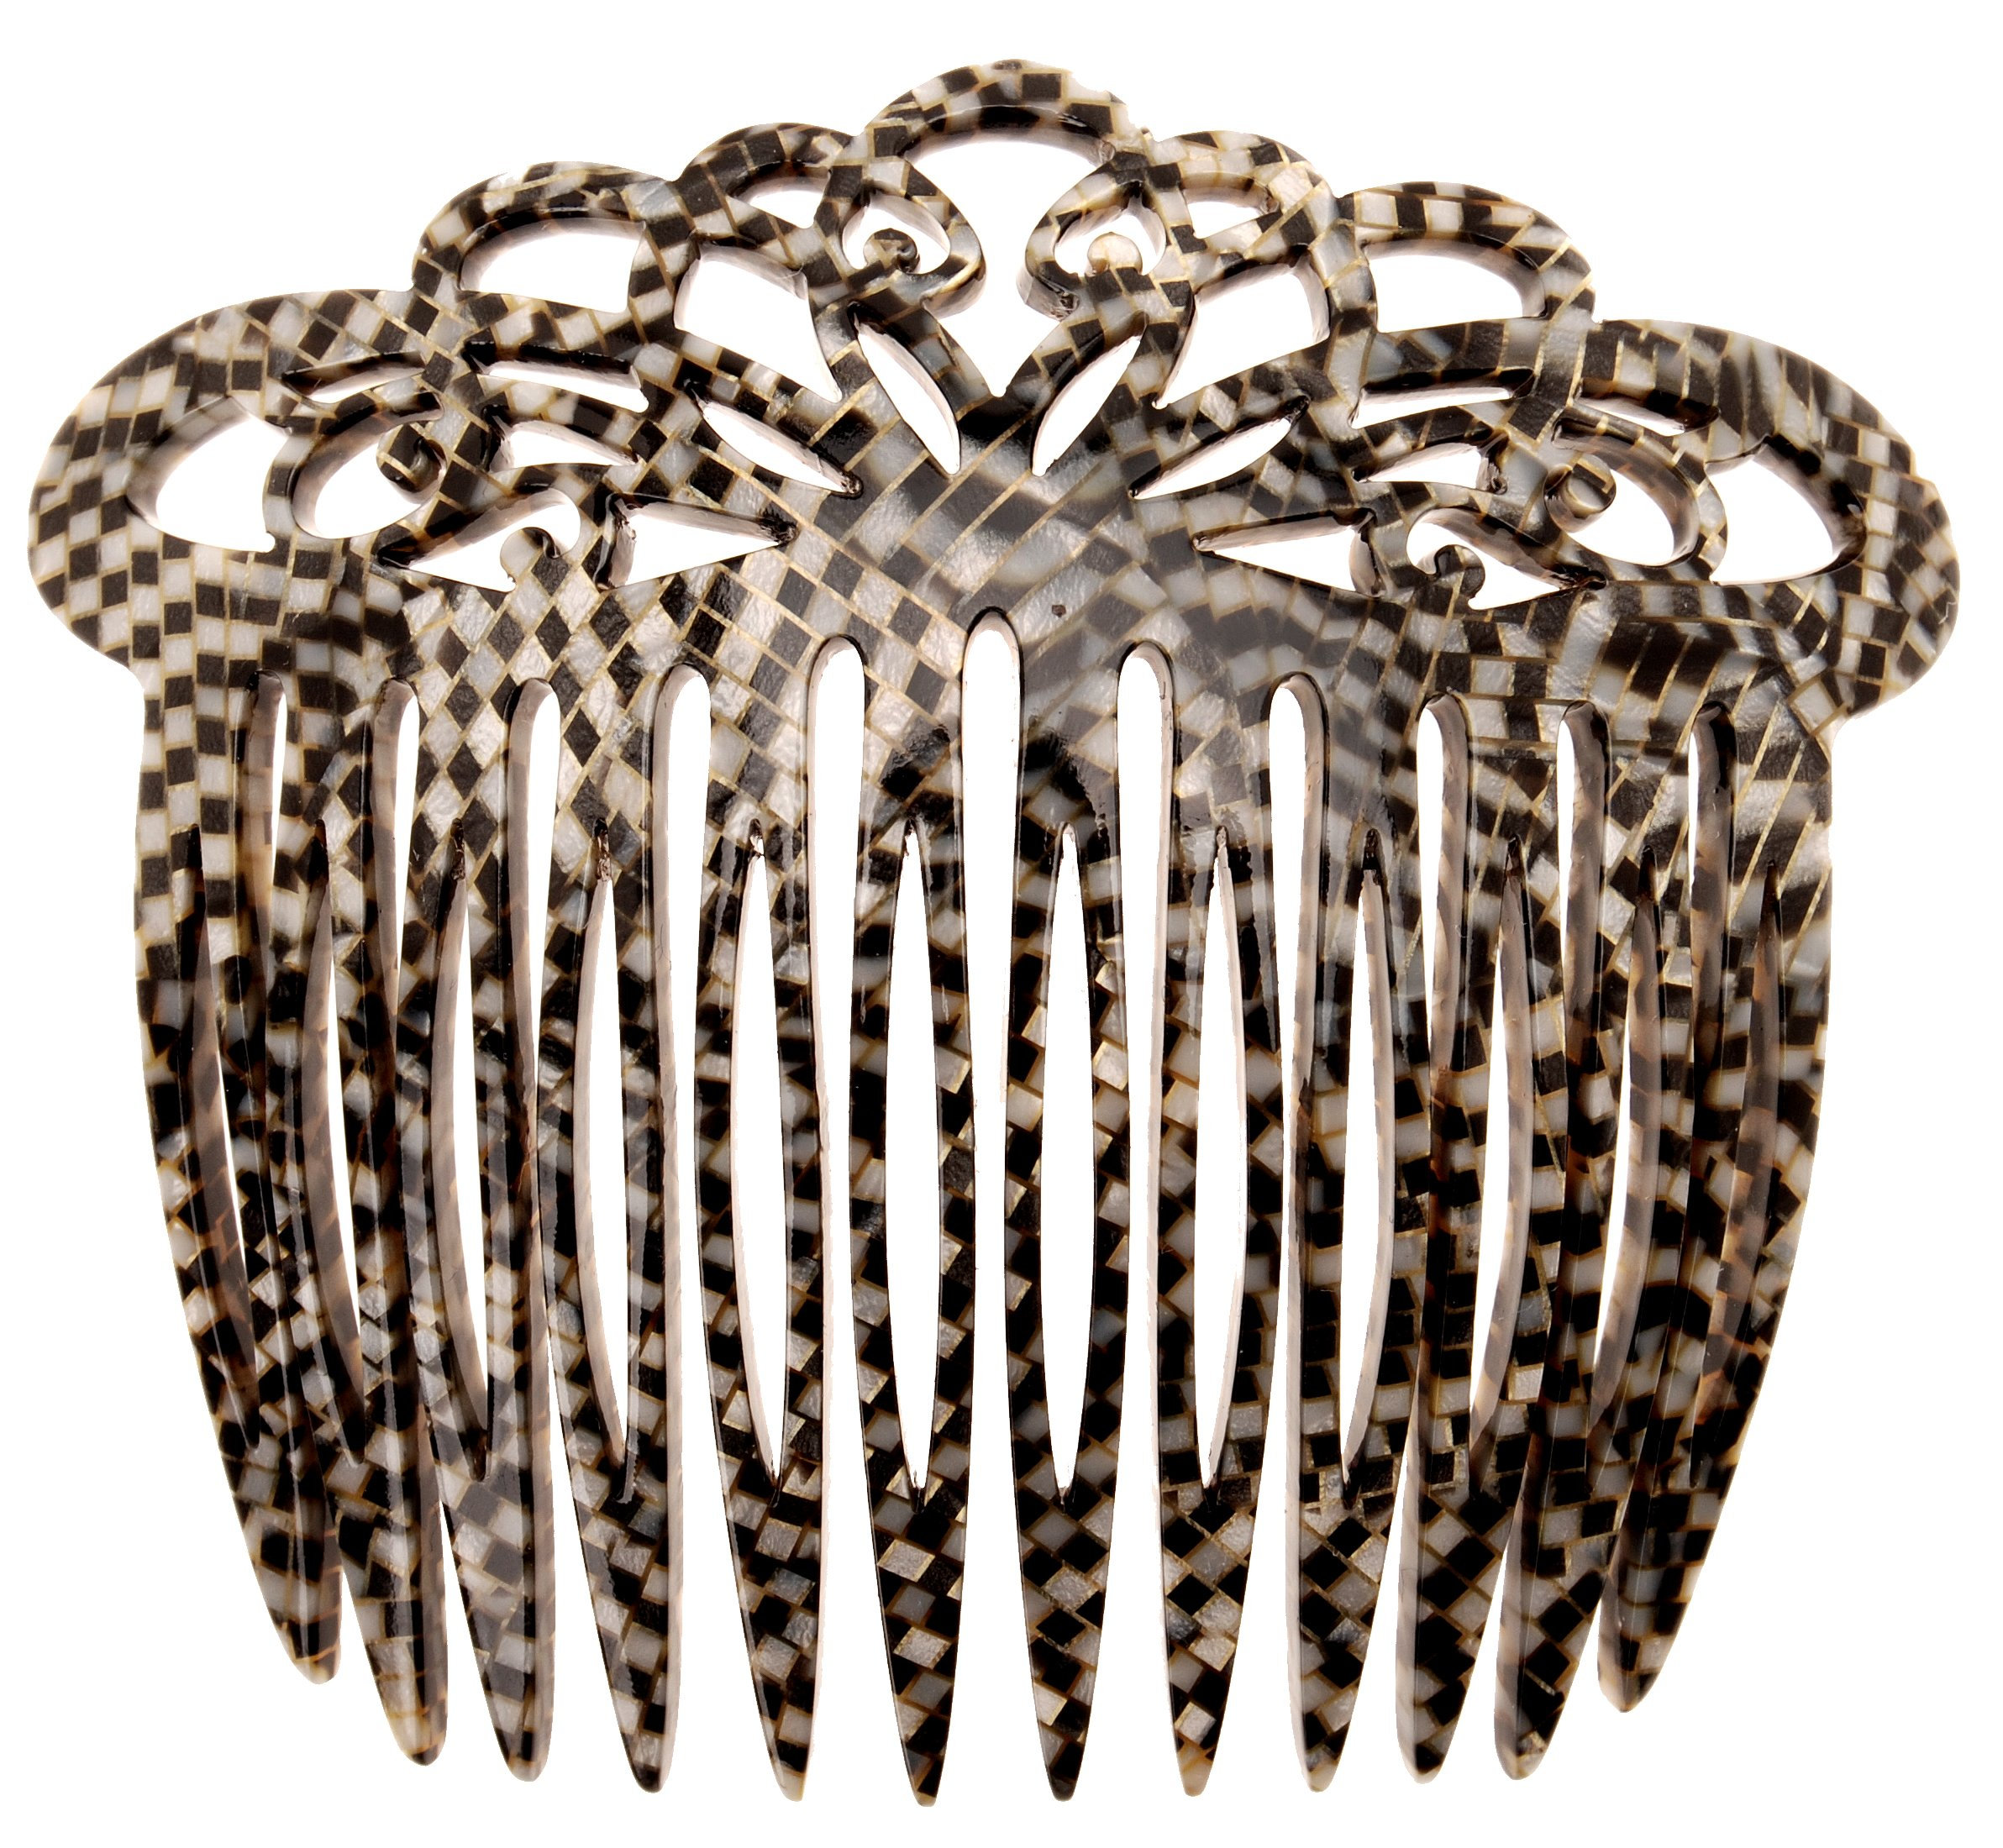 France Luxe Chicago Comb - Opera Silver by France Luxe